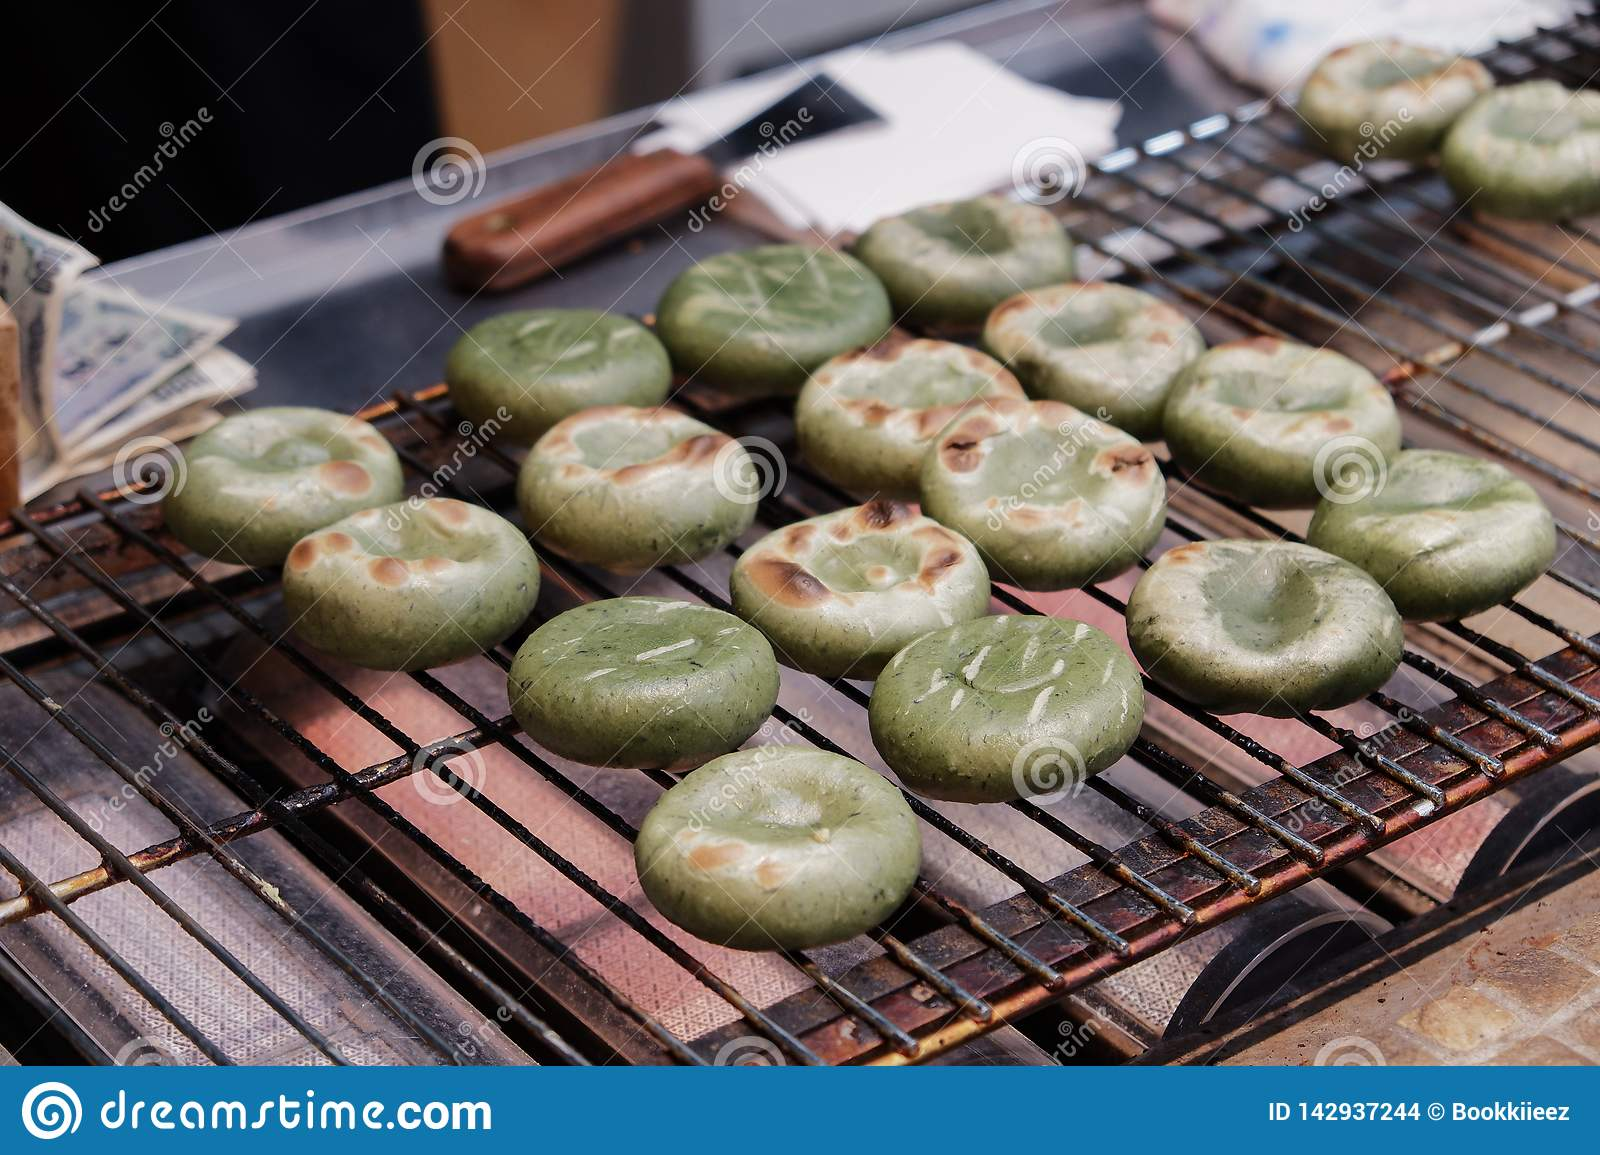 Roasted green tea mochi with red beans inside.